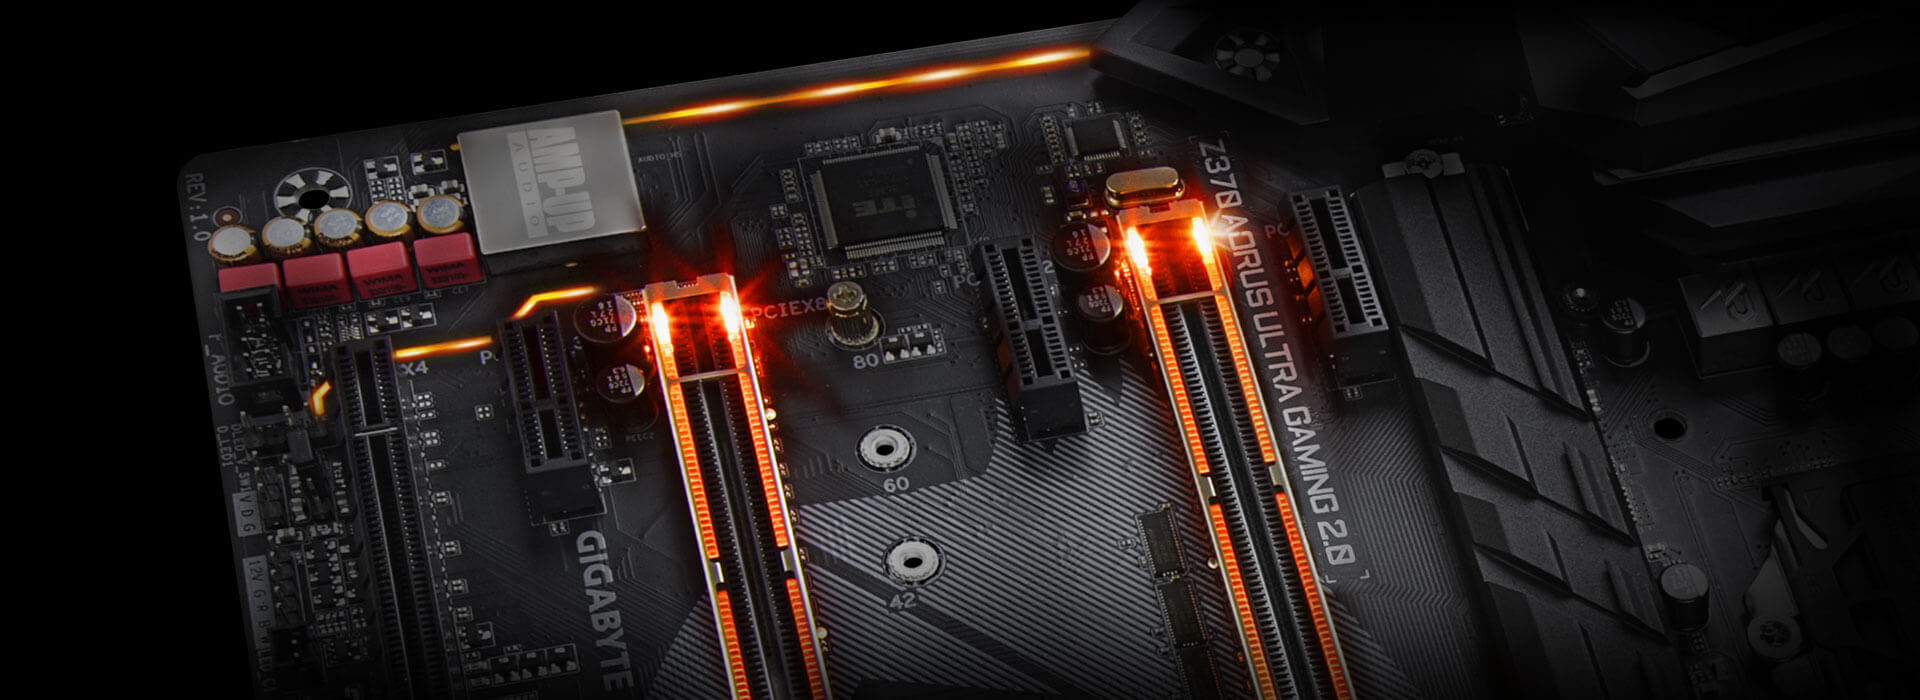 Z370 Aorus Ultra Gaming 20 Op Power Saver Circuit Diagram Jumbo Intelligent Multi Light Zones Are Equipped With High Brightness Rgb Leds Namely The Memory Audio Pci Express And Swappable Overlay For Accent Led